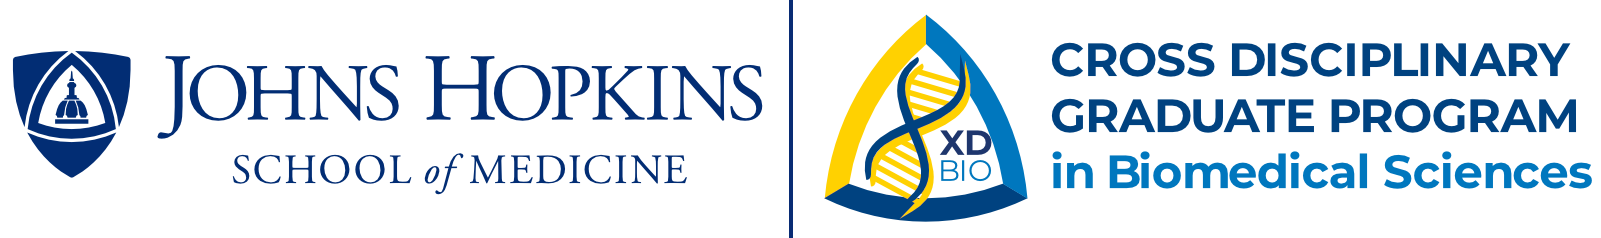 Johns Hopkins Cross-Disciplinary Graduate Program in Biomedical Sciences